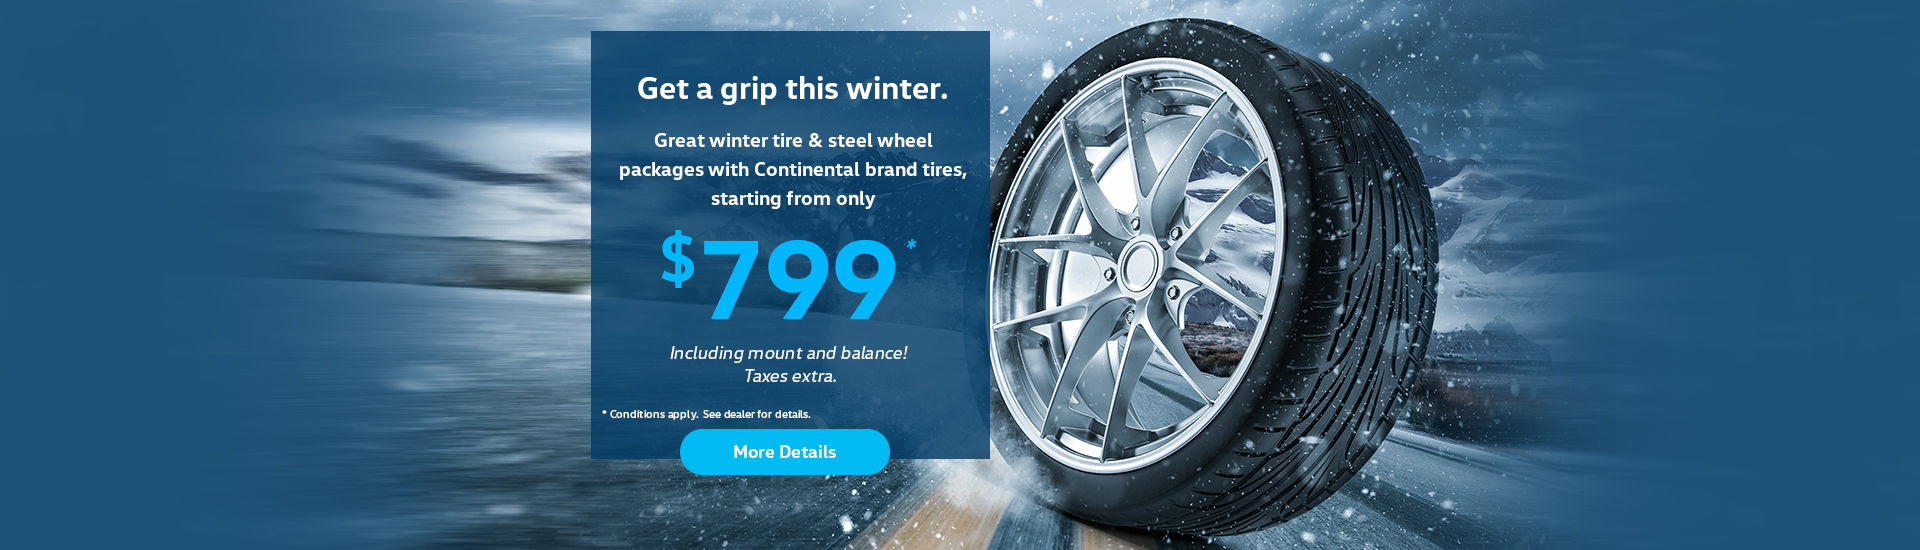 Winter Tire offer